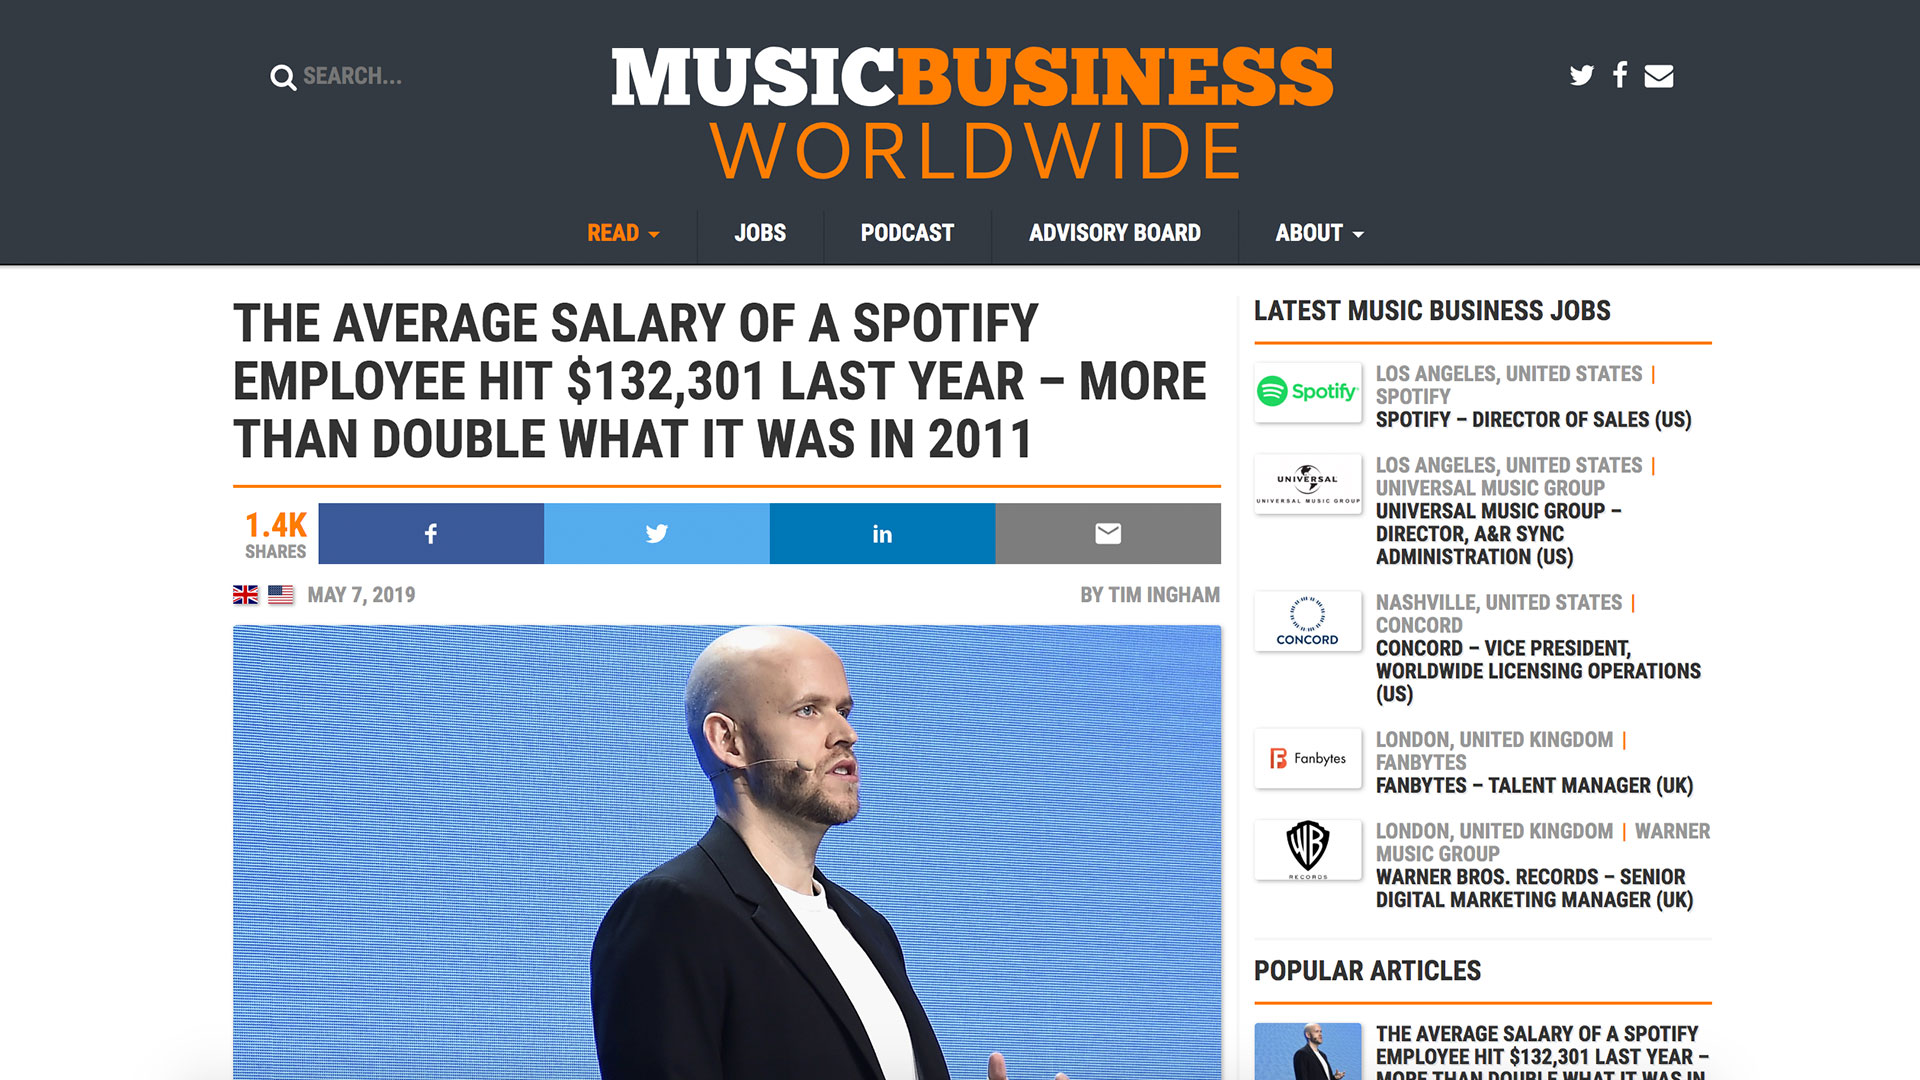 Fairness Rocks News THE AVERAGE SALARY OF A SPOTIFY EMPLOYEE HIT $132,301 LAST YEAR – MORE THAN DOUBLE WHAT IT WAS IN 2011